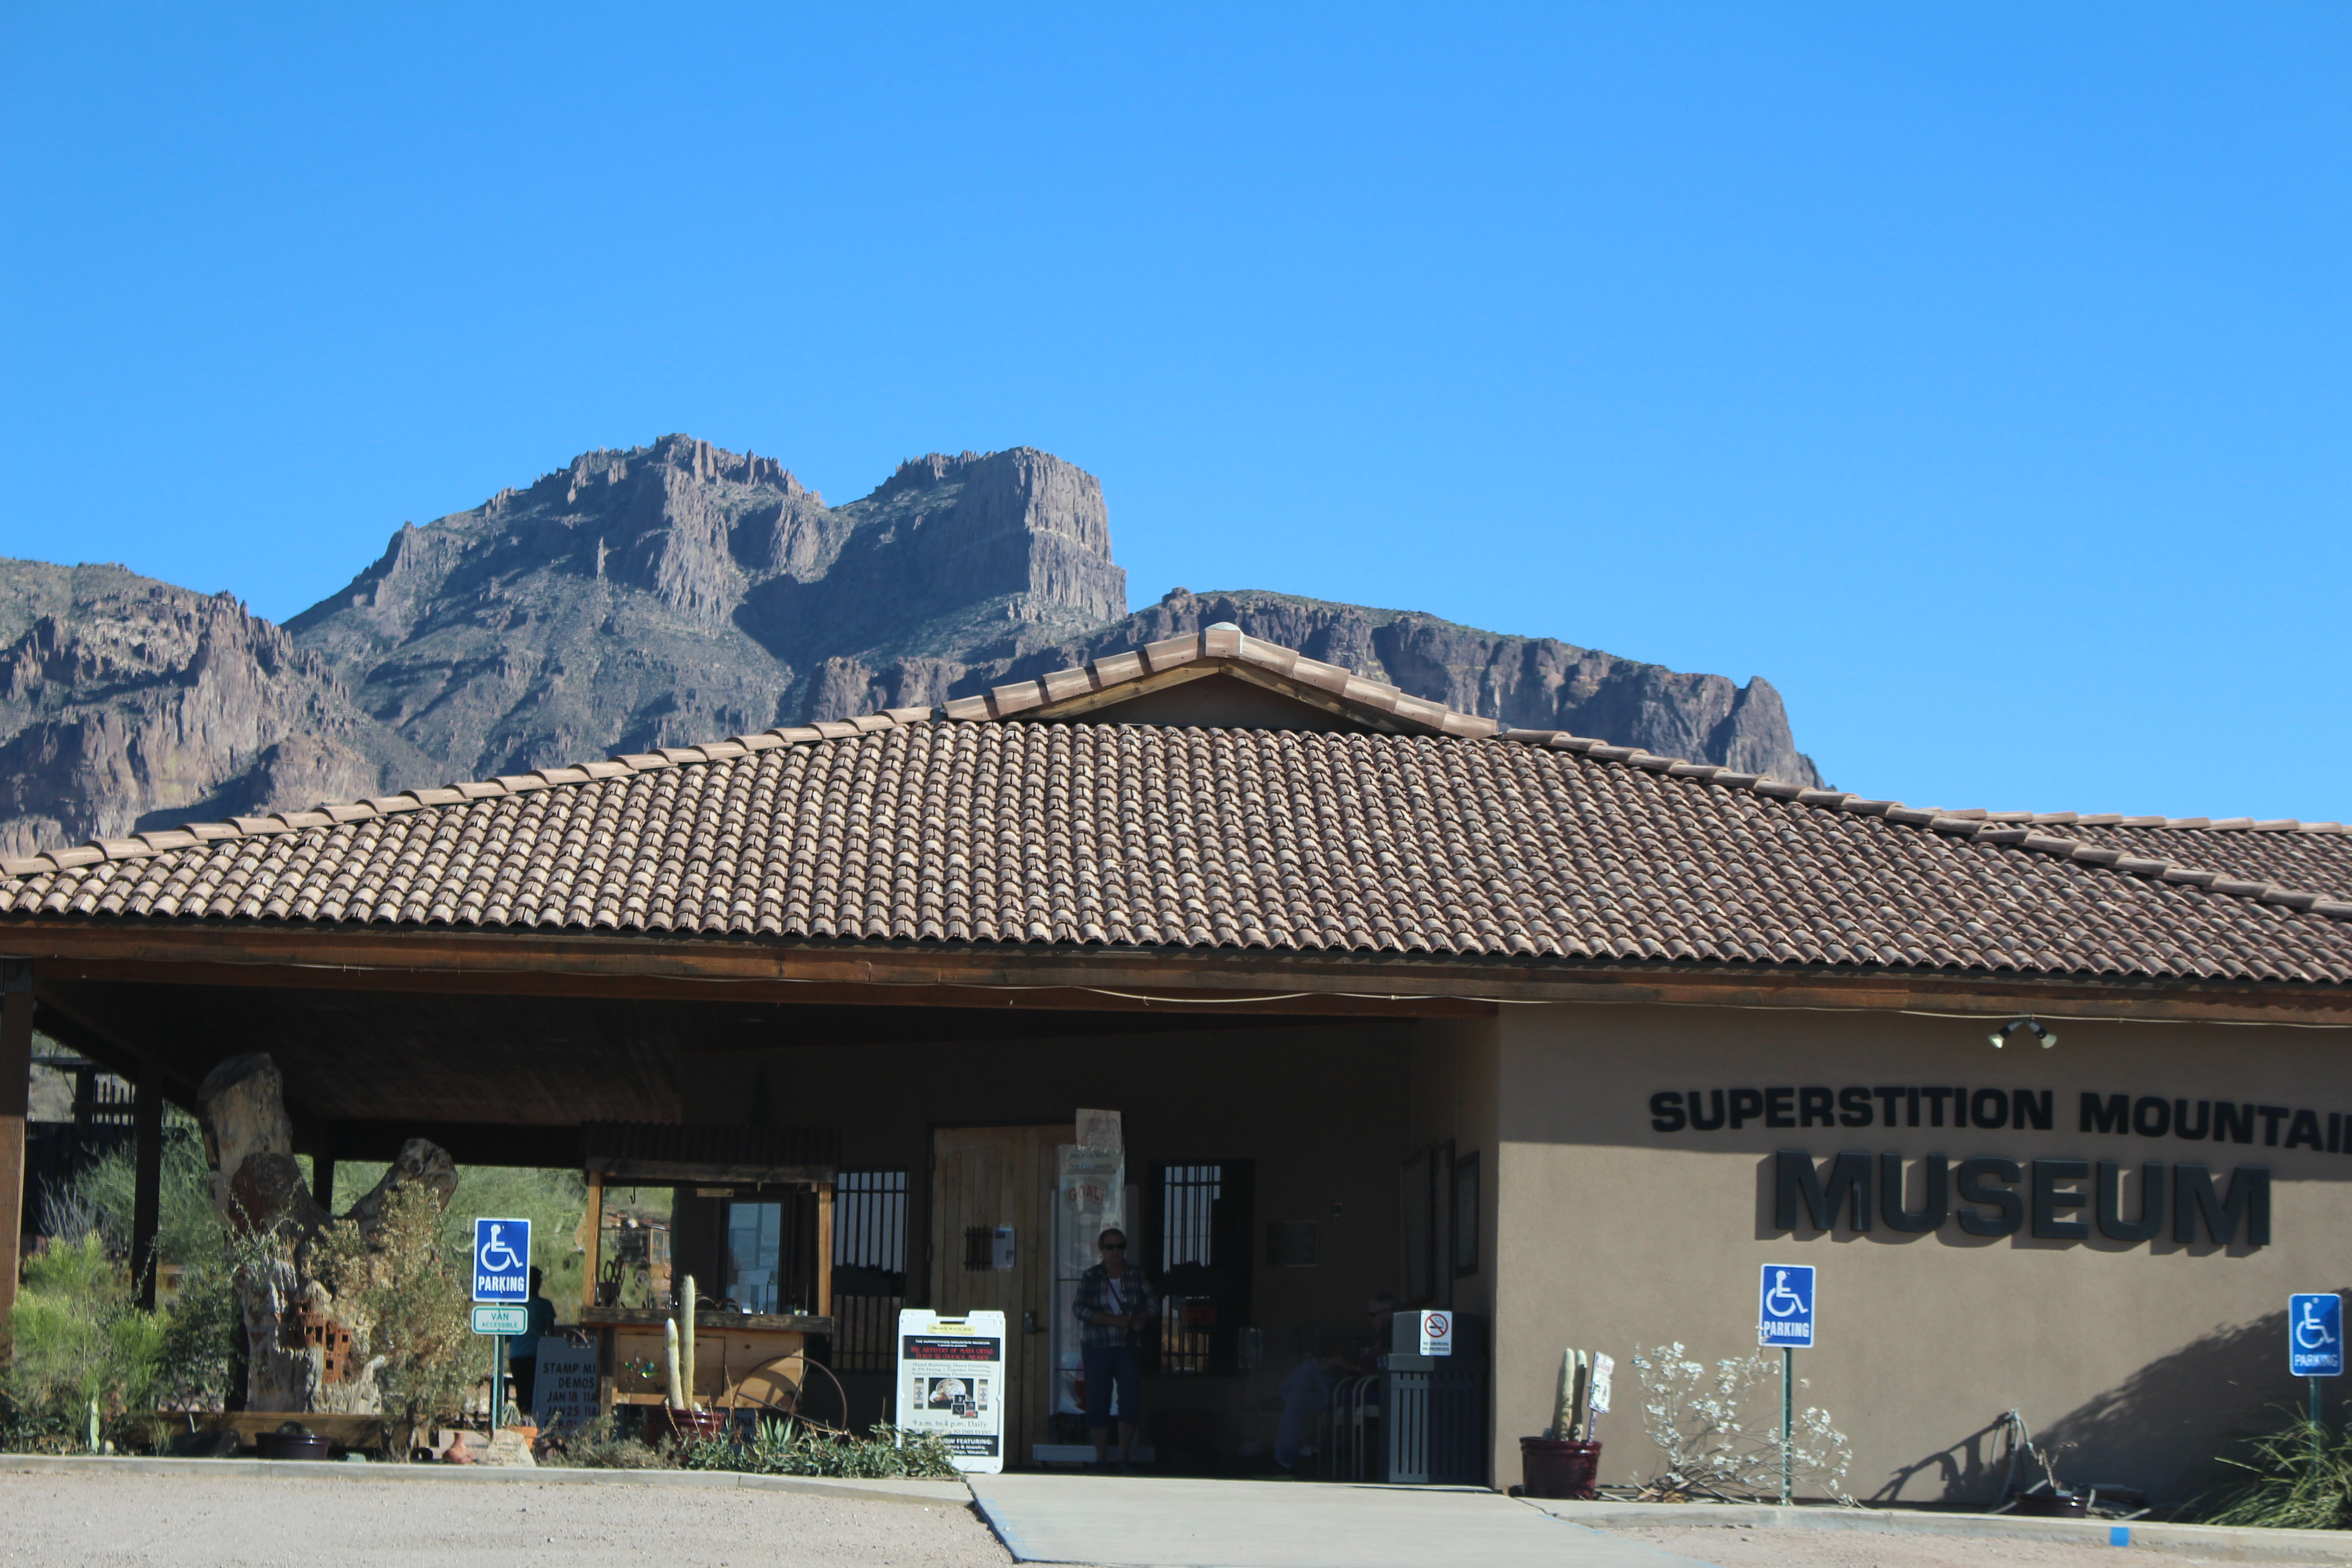 Superstition Mountain Museum Entrance